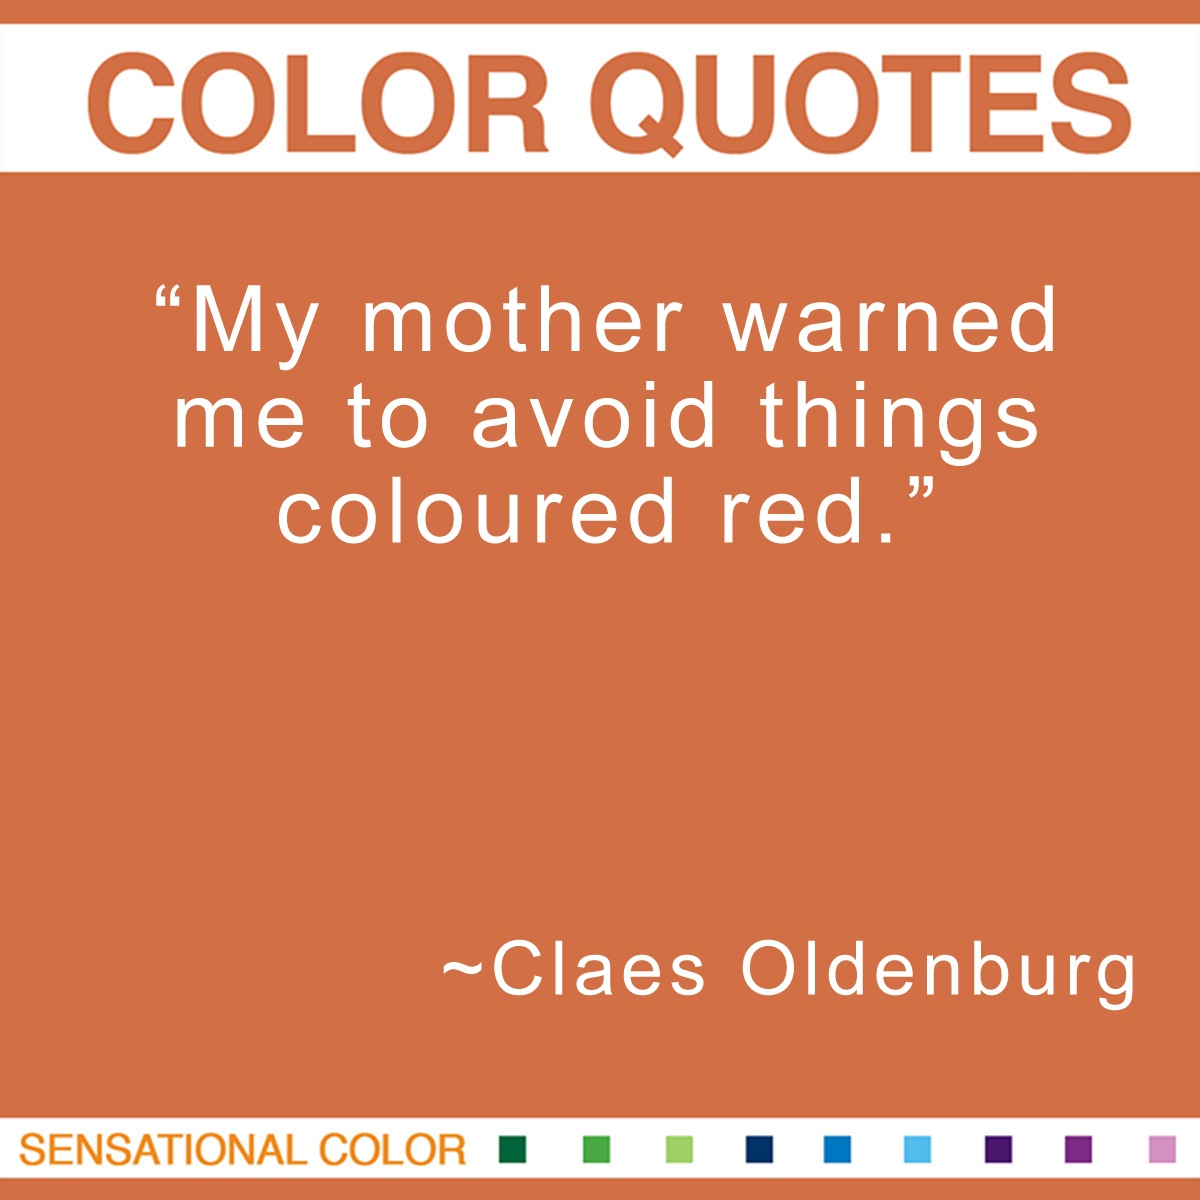 """My mother warned me to avoid things coloured red."" - Claes Oldenburg"